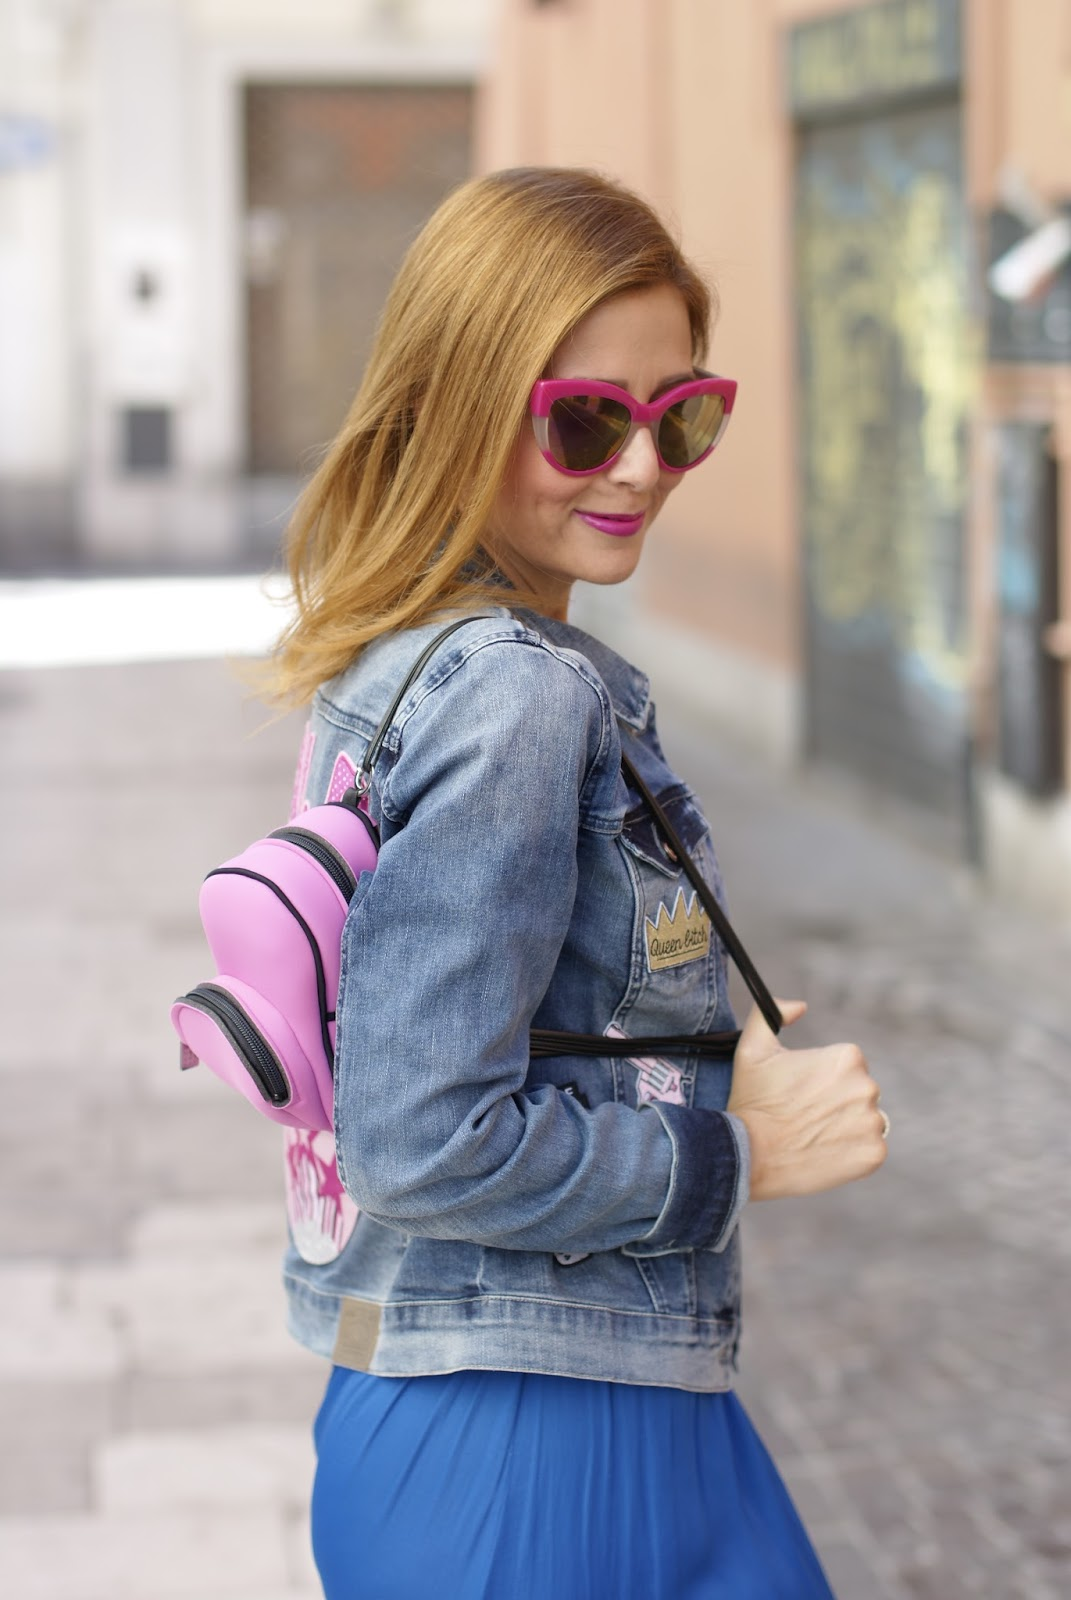 Denim jacket with patches and Save My Bag backpack on Fashion and Cookies fashion blog, fashion blogger style